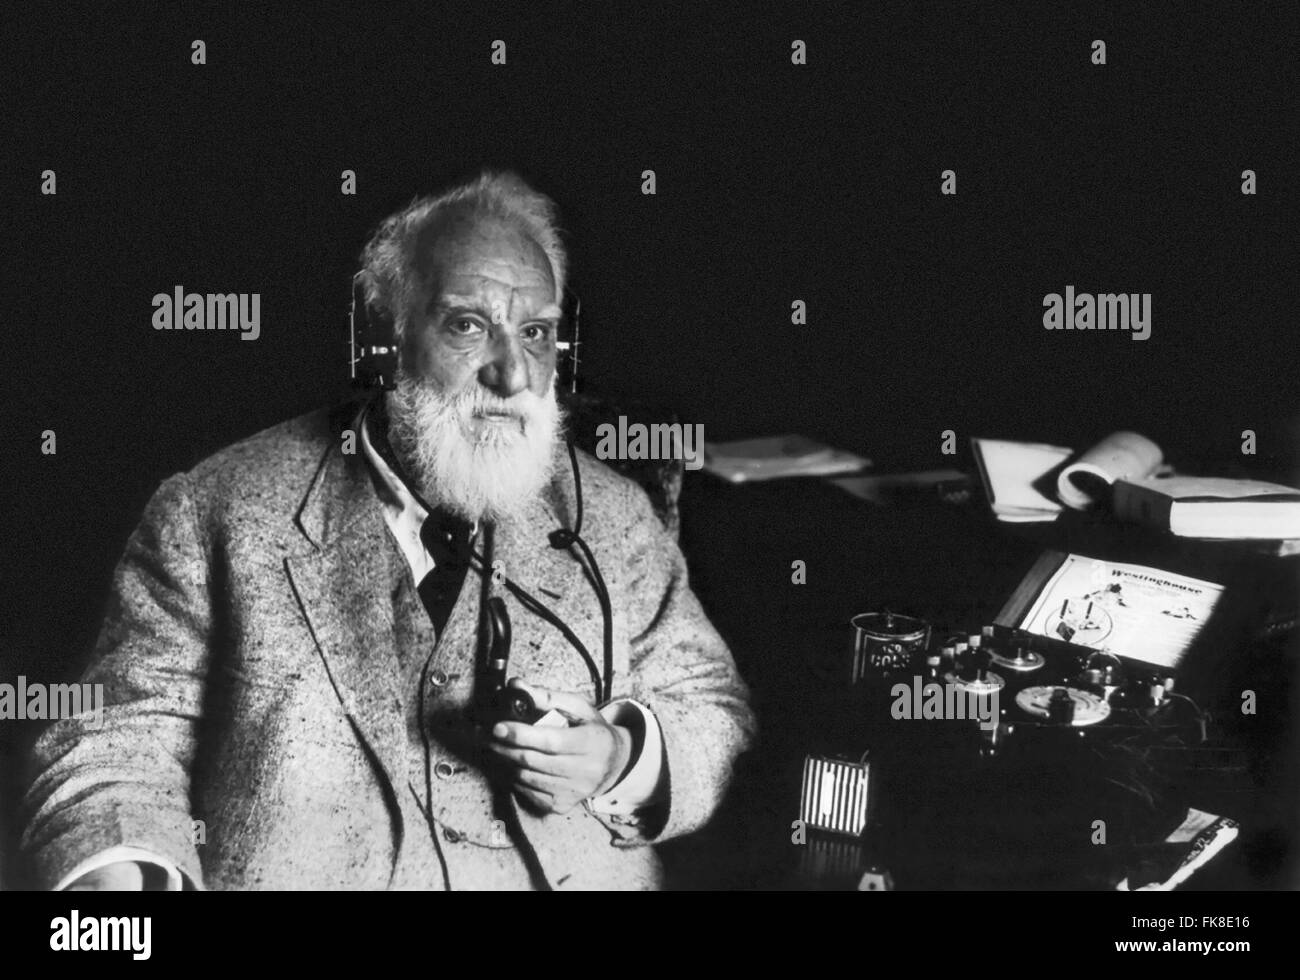 Alexander Graham Bell, c. May 1922 - Stock Image